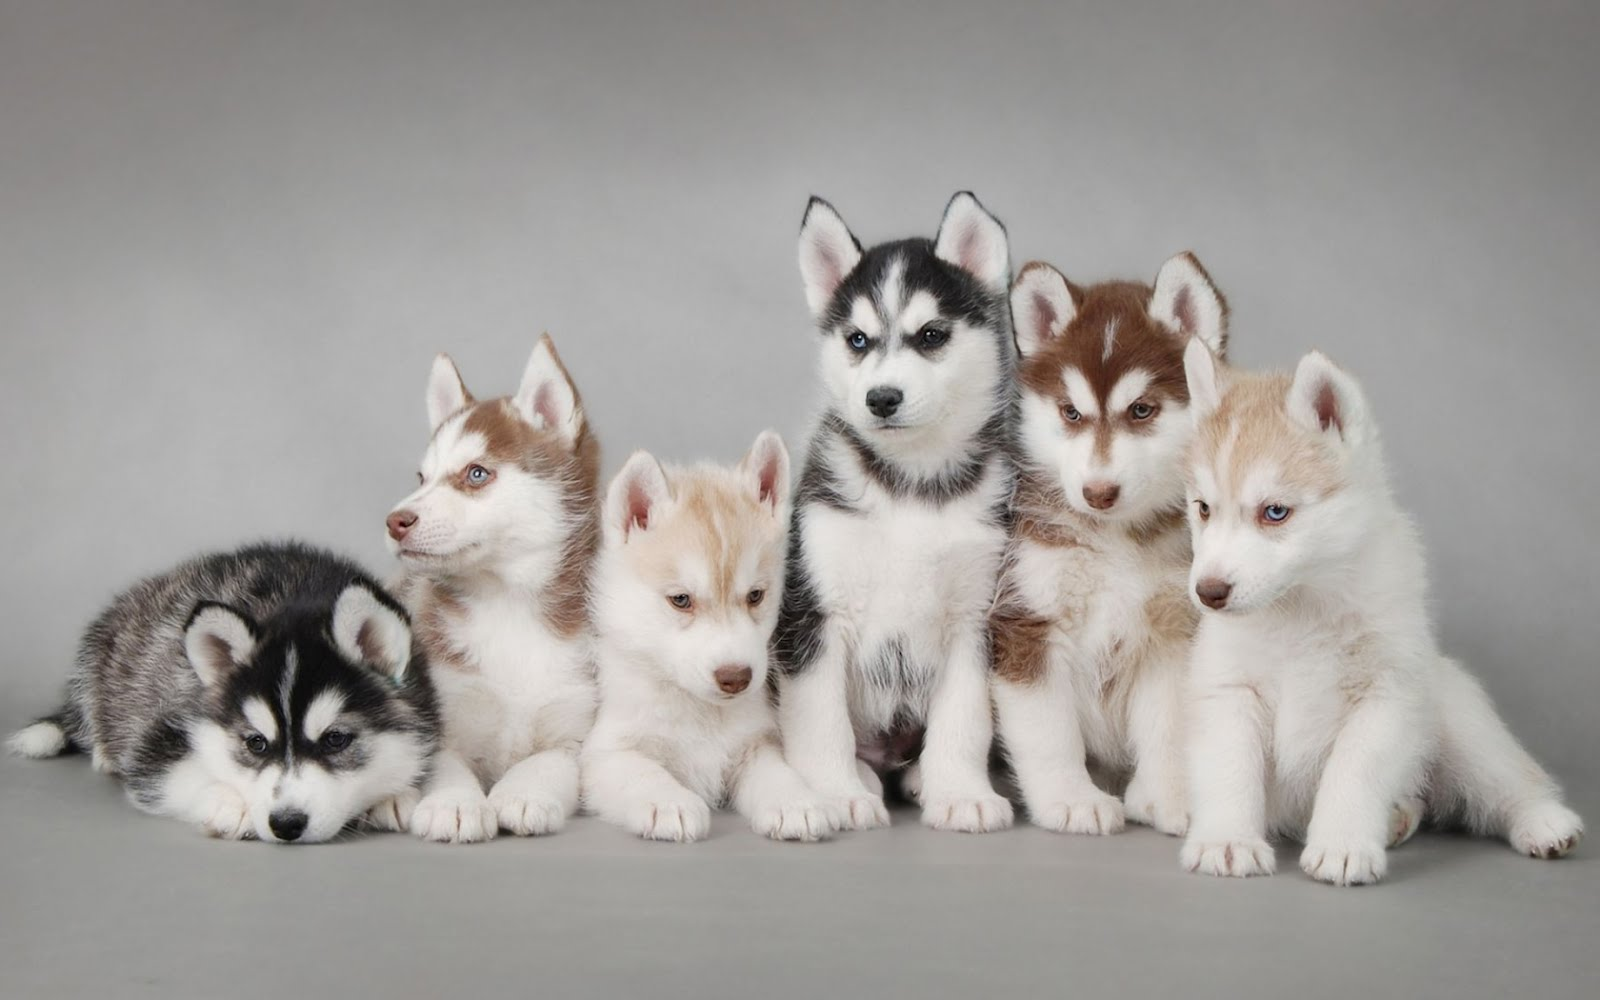 Siberian Husky Puppies | Hd Desktop Wallpaper